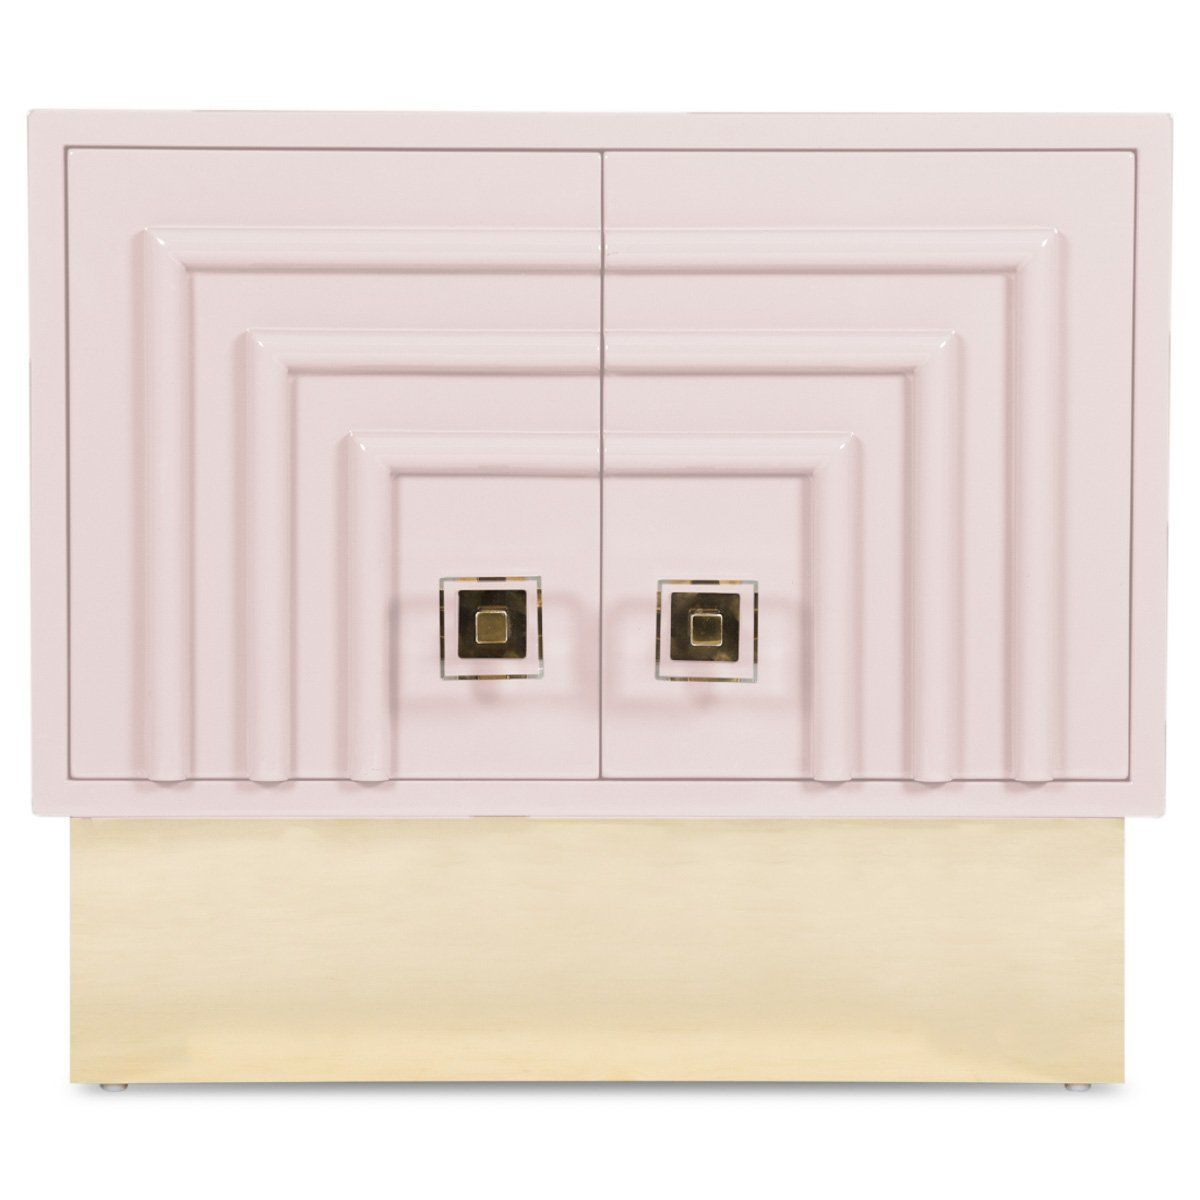 Art deco side table art deco lead time and modern